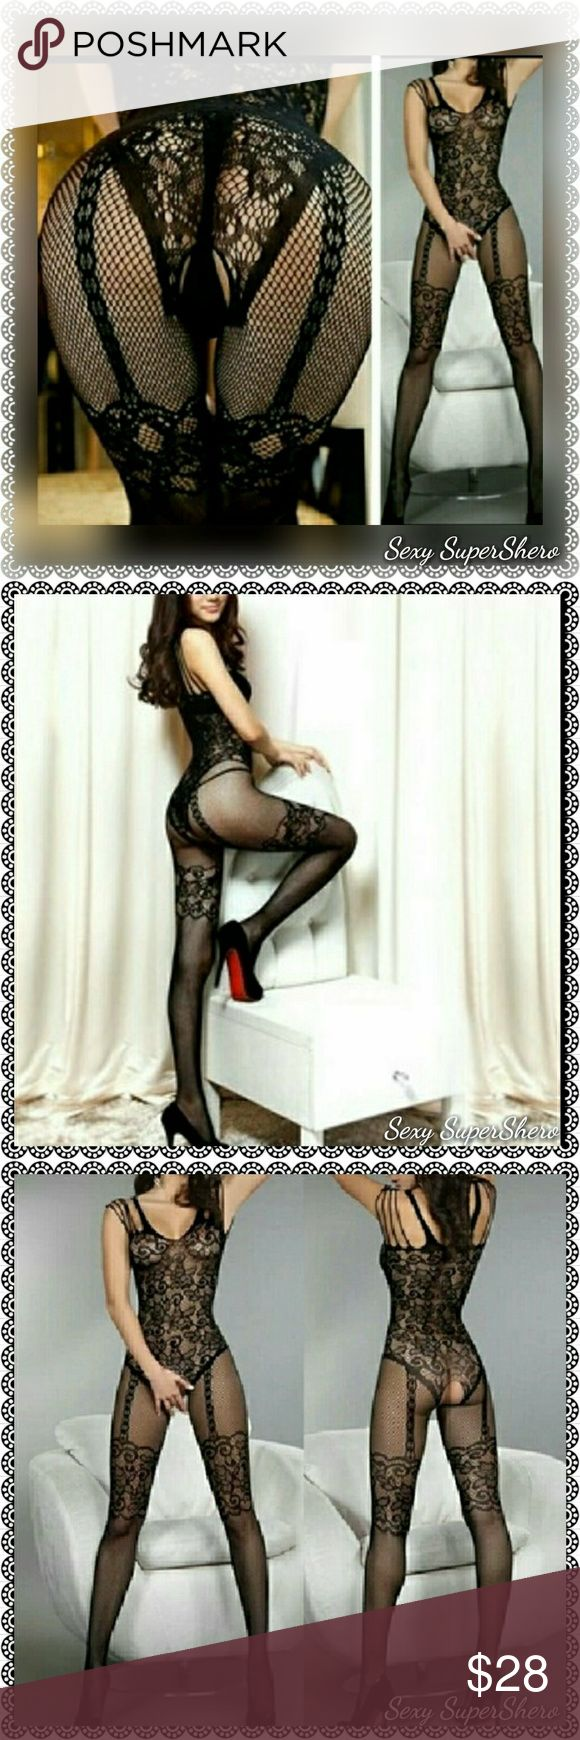 Full-Body open crotch Sexy lingere stockings Brand New in Packaging Sexy lingere Full-Body stockings Open crotch 1pcs Fishnet & lace Open crotch Body Stocking (G-string is not included) PERFECT Surprise-Your-Man lingere one-piece!   Size(s): One size- fits 4'9-5-11, 90-165lbs Also available in QS (plus size),see other listing  Color(s): Black  Material(s): 90% Nylon, 10% Spandex  Prices are FIRM unless bundled! Bundle to Save!  Ships in~48hrs Sexy SuperShero Intimates & Sleepwear